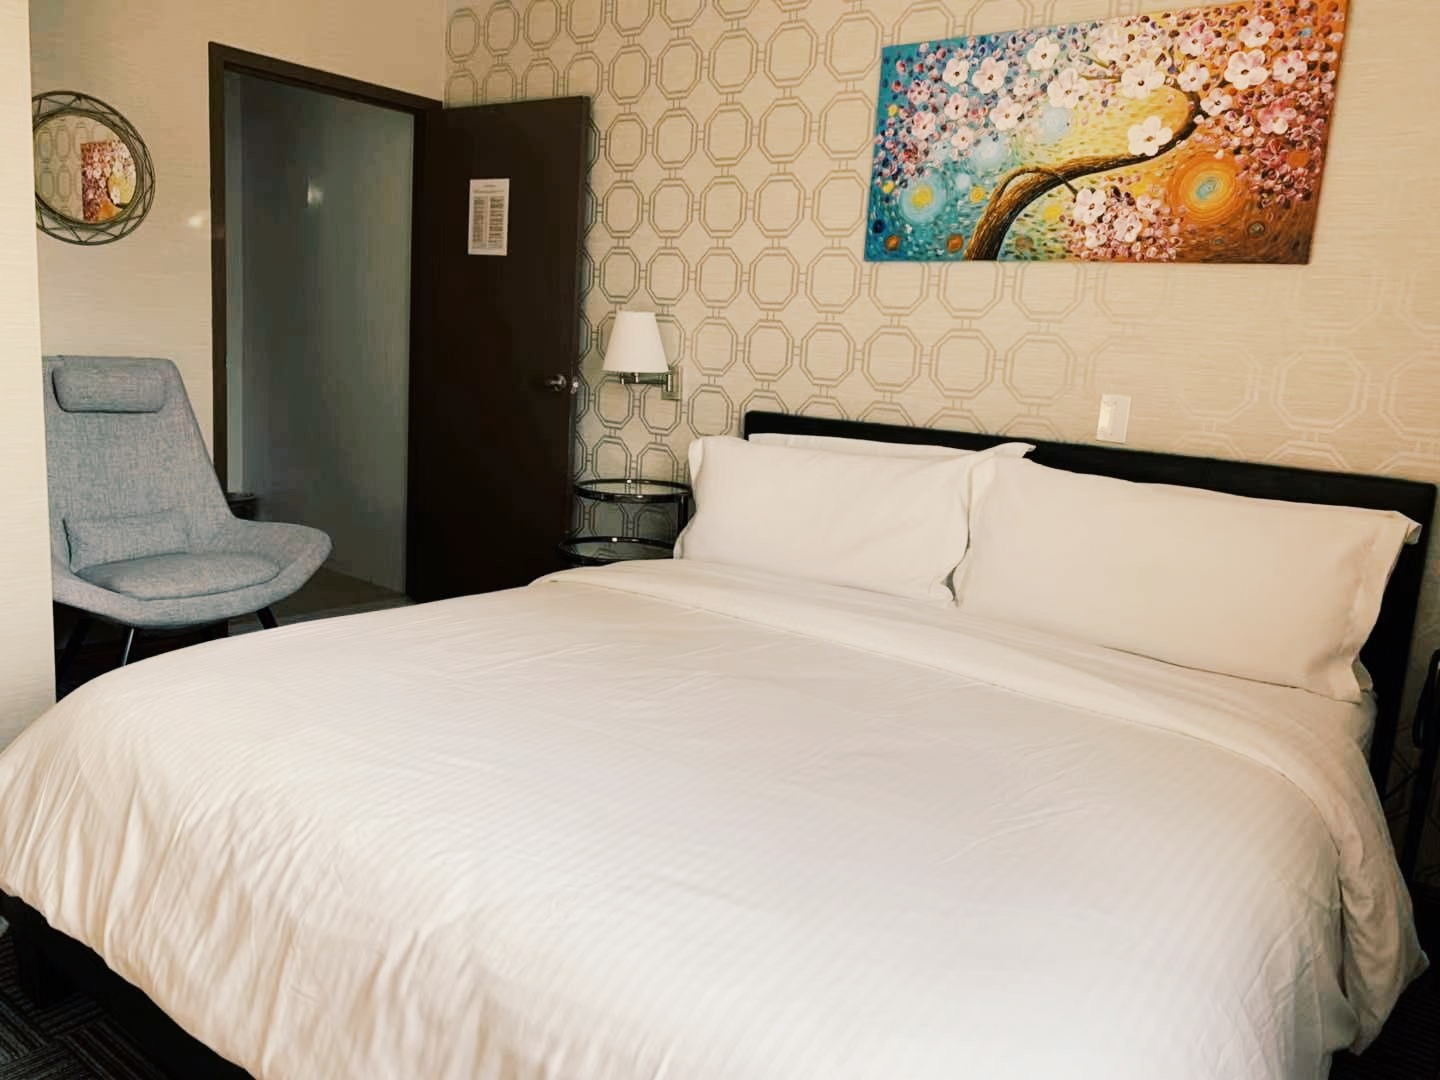 Our King Room, very spacious and comfy